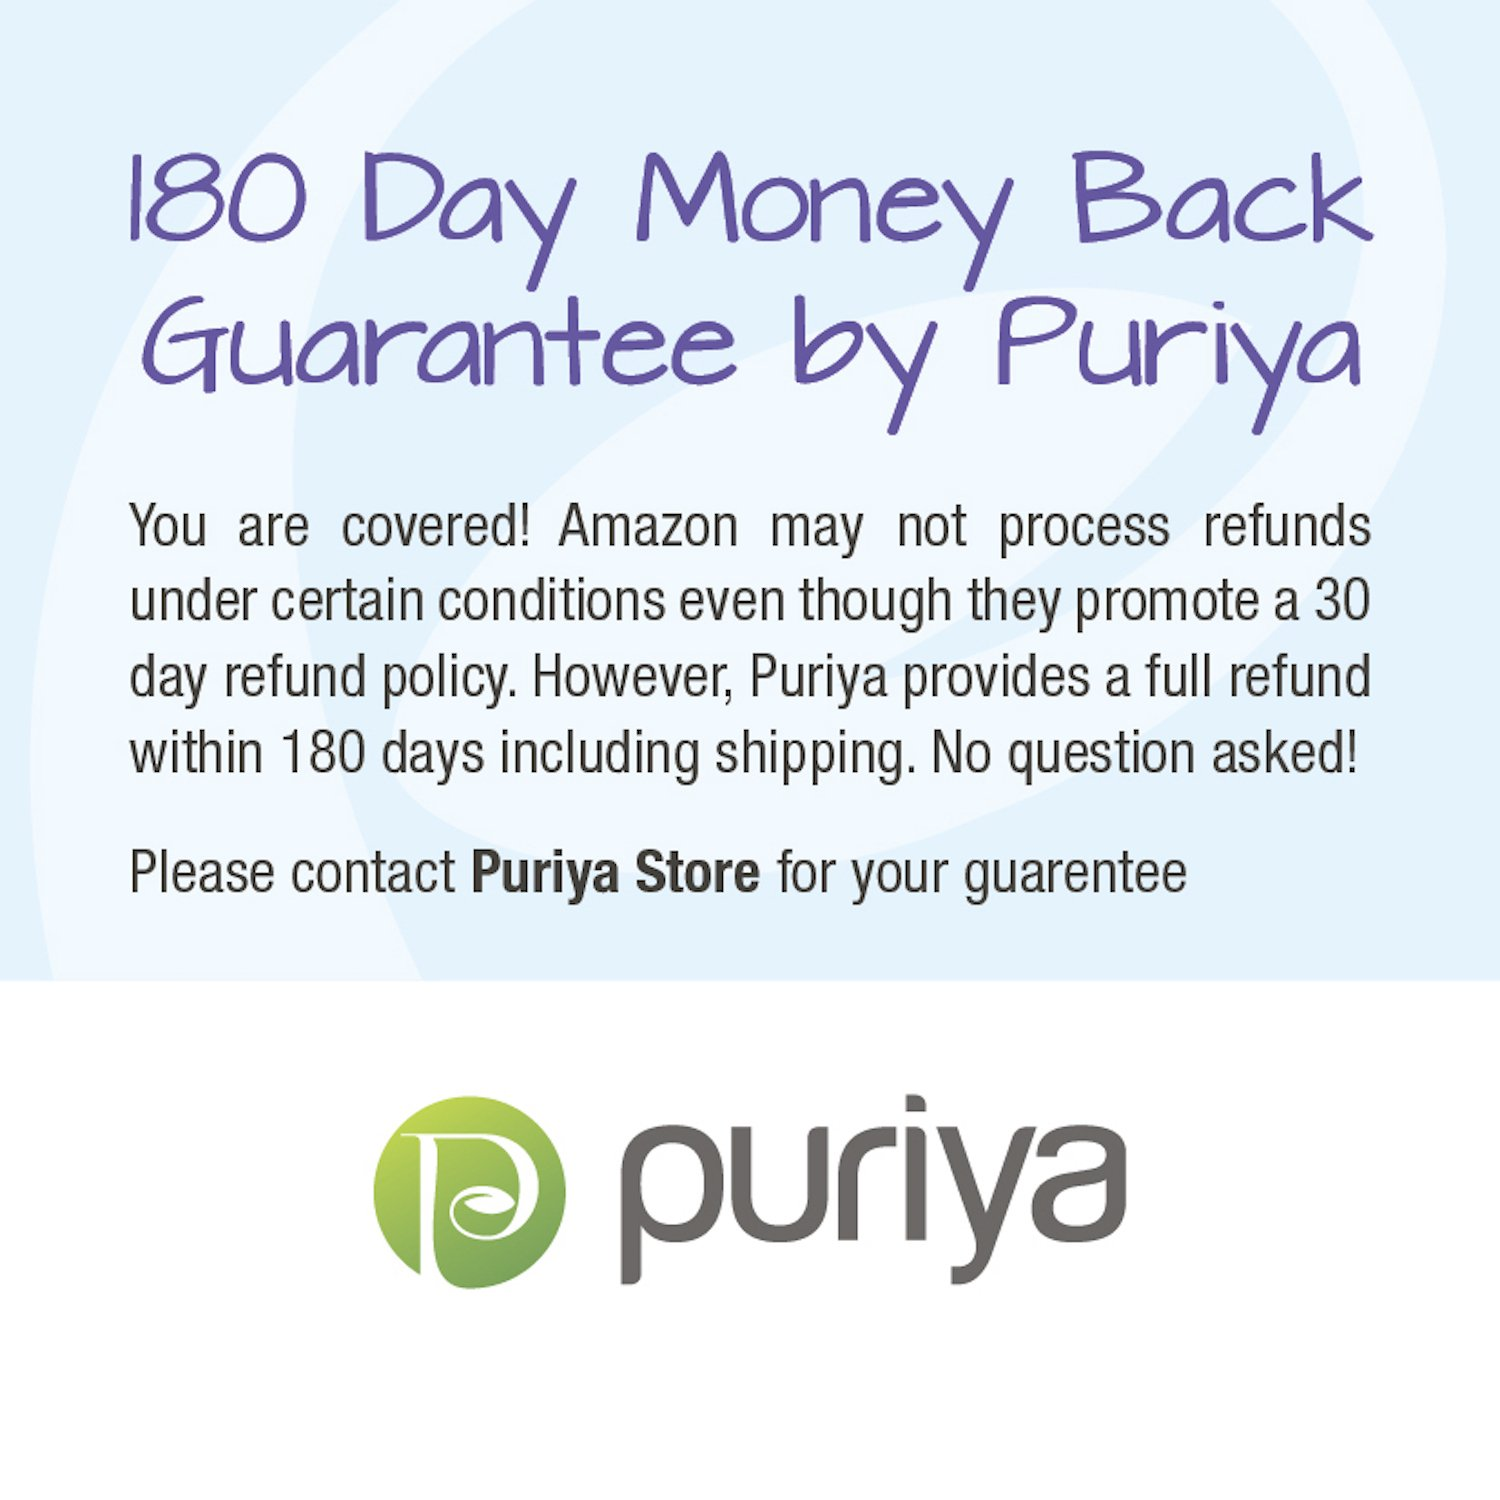 Puriya Sulfate Free Anti Dandruff Shampoo with Tea Tree Oil. 16 oz. Moisturizing and Gentle for Daily Use. Combats itchy, Flaky, Dry Scalp. Ideal for Psoriasis, Seborrheic Dermatitis, scalp eczema by Puriya (Image #7)